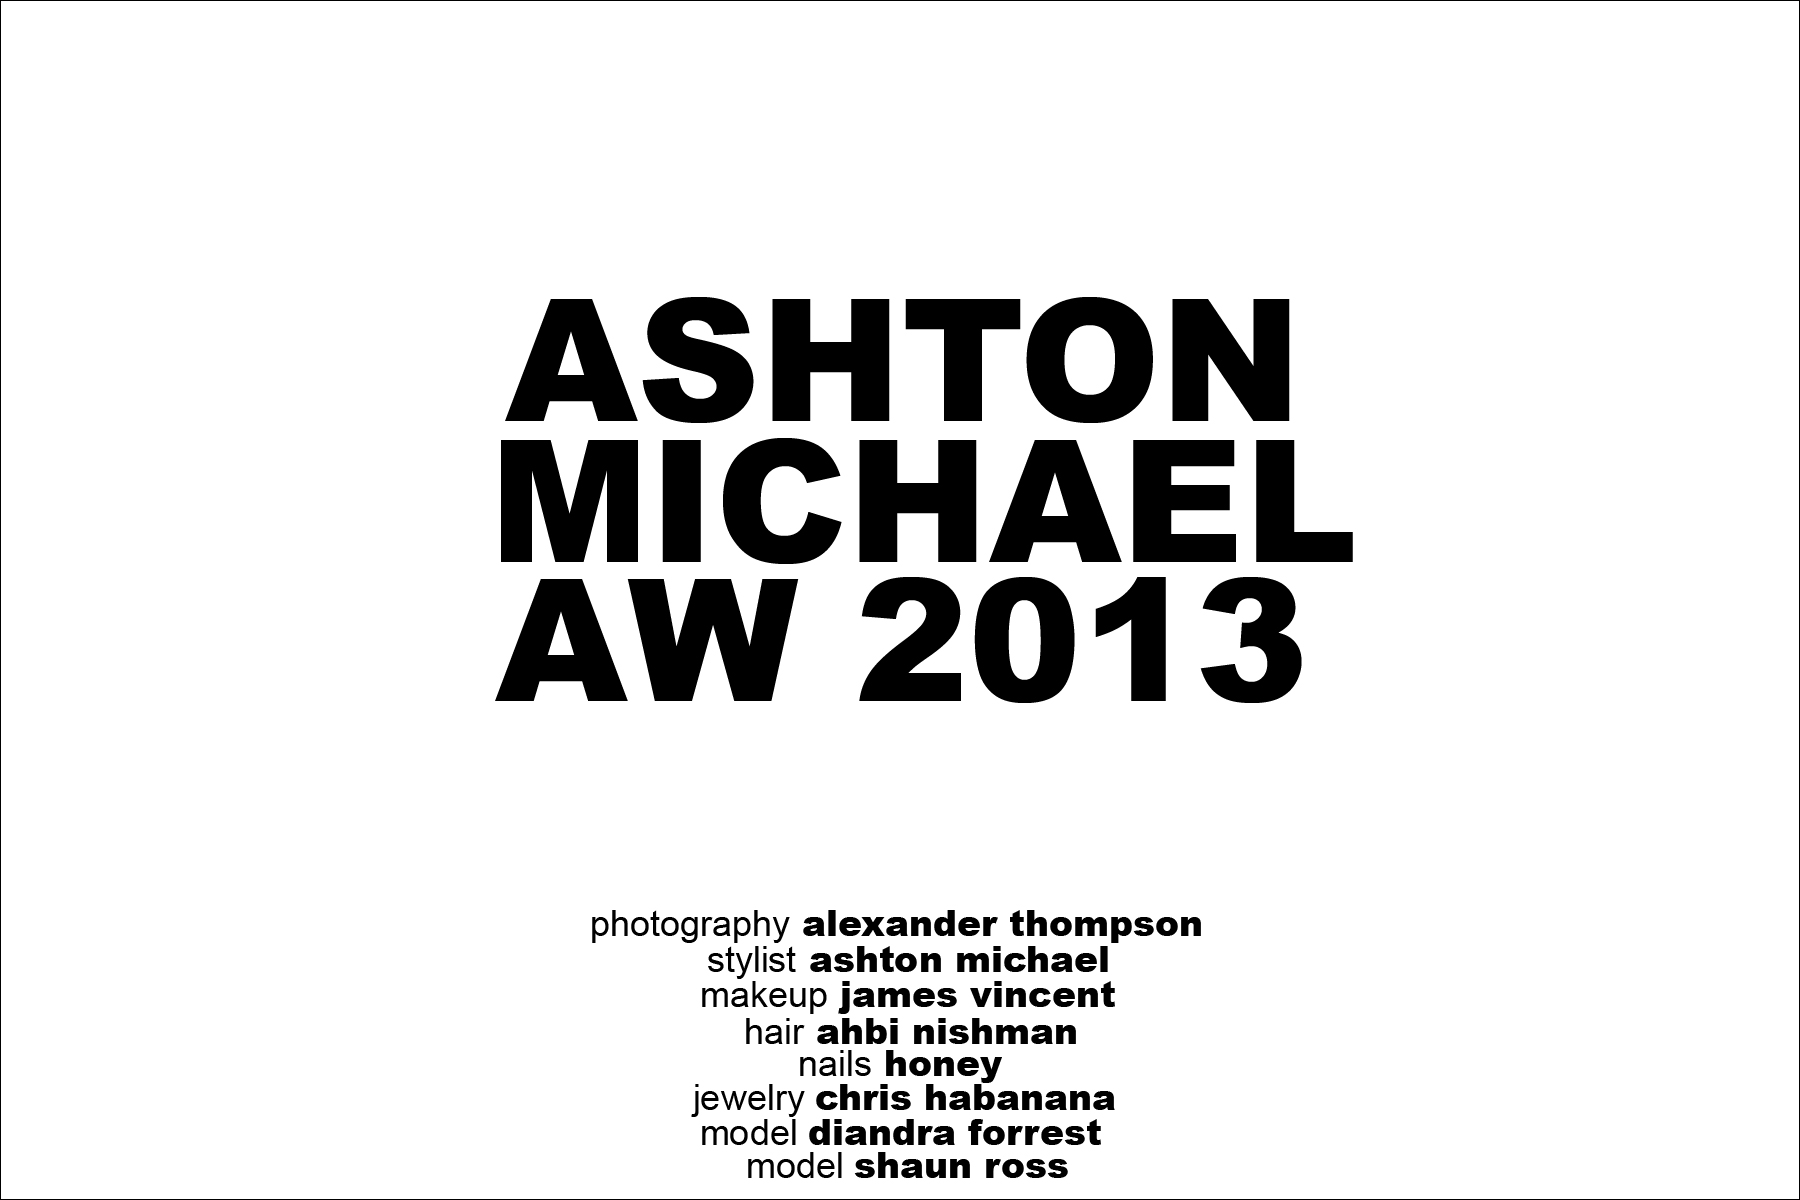 Credits for Ashton Michael AW 2013, photographed by Alexander Thompson for Ponyboy Magazine.